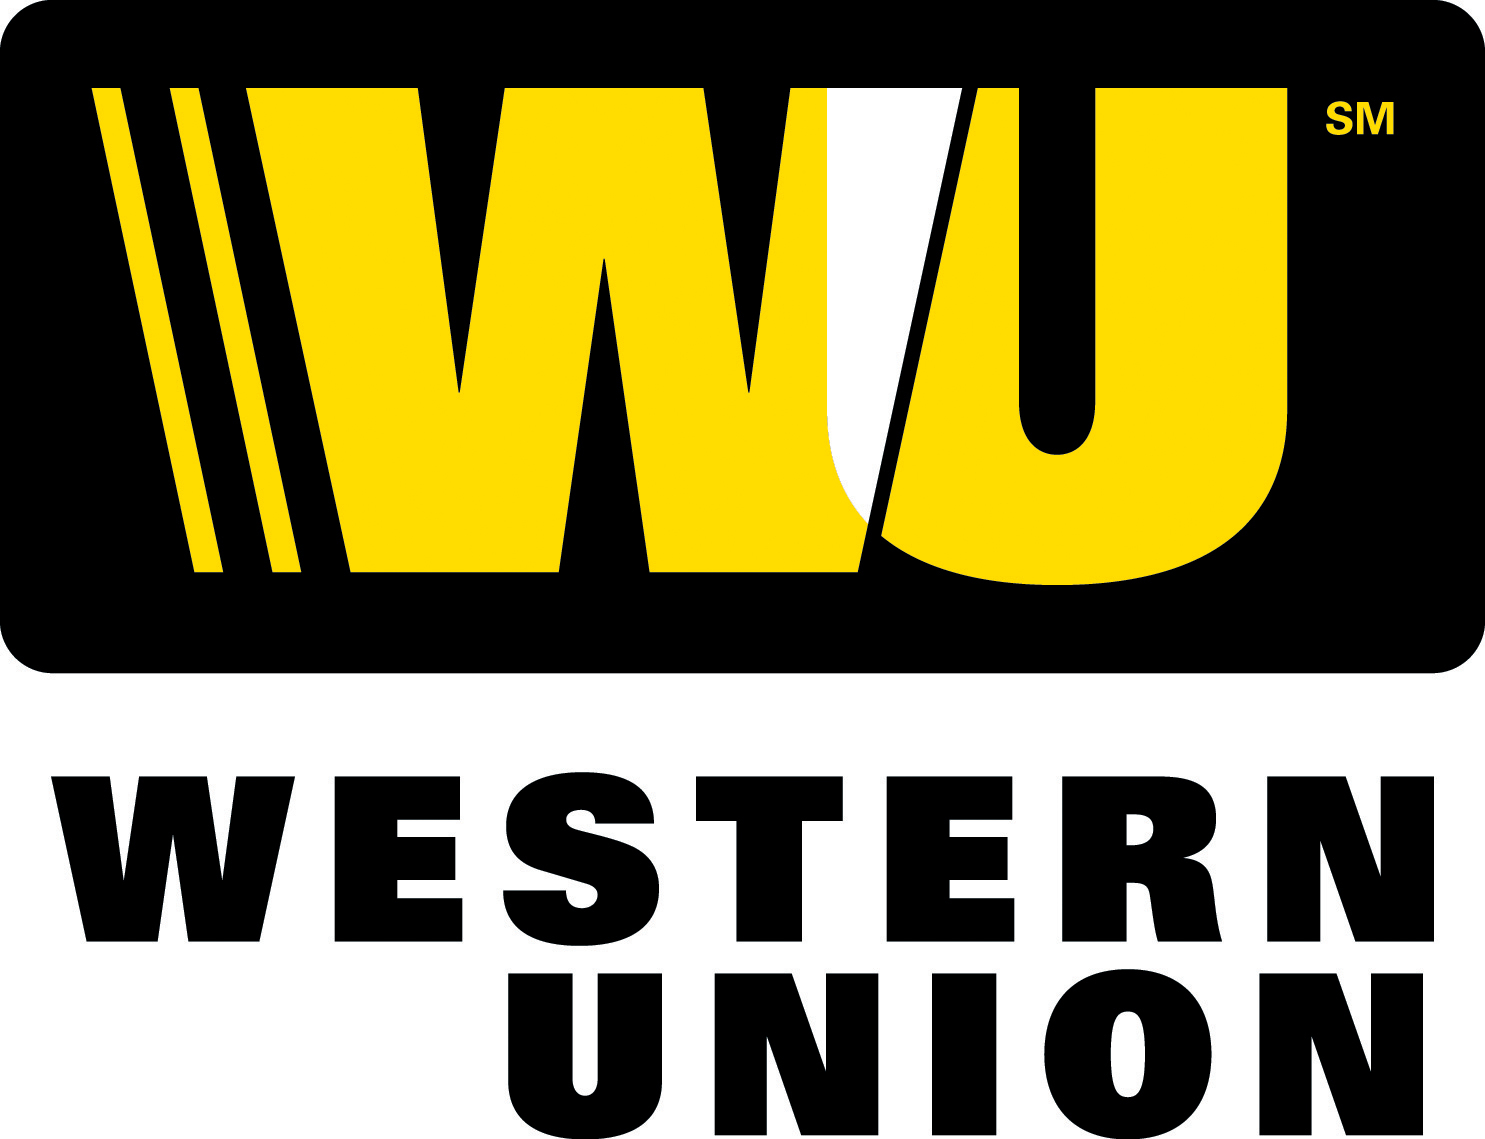 Western Union Images - Logo Western Union PNG